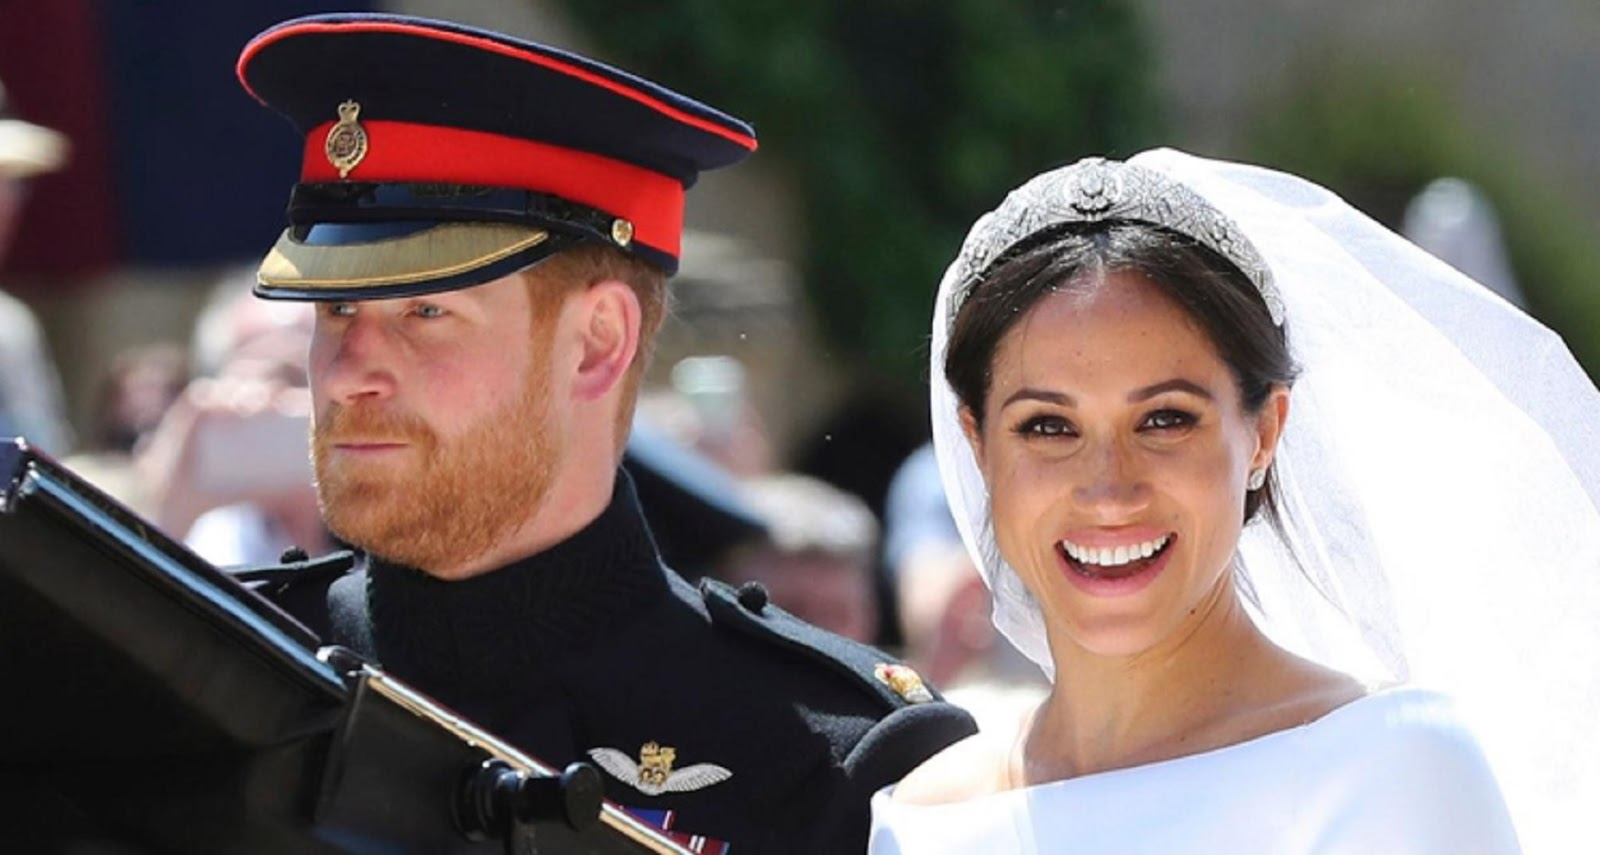 PRINCE HARRY, MEGHAN MARKLE 4